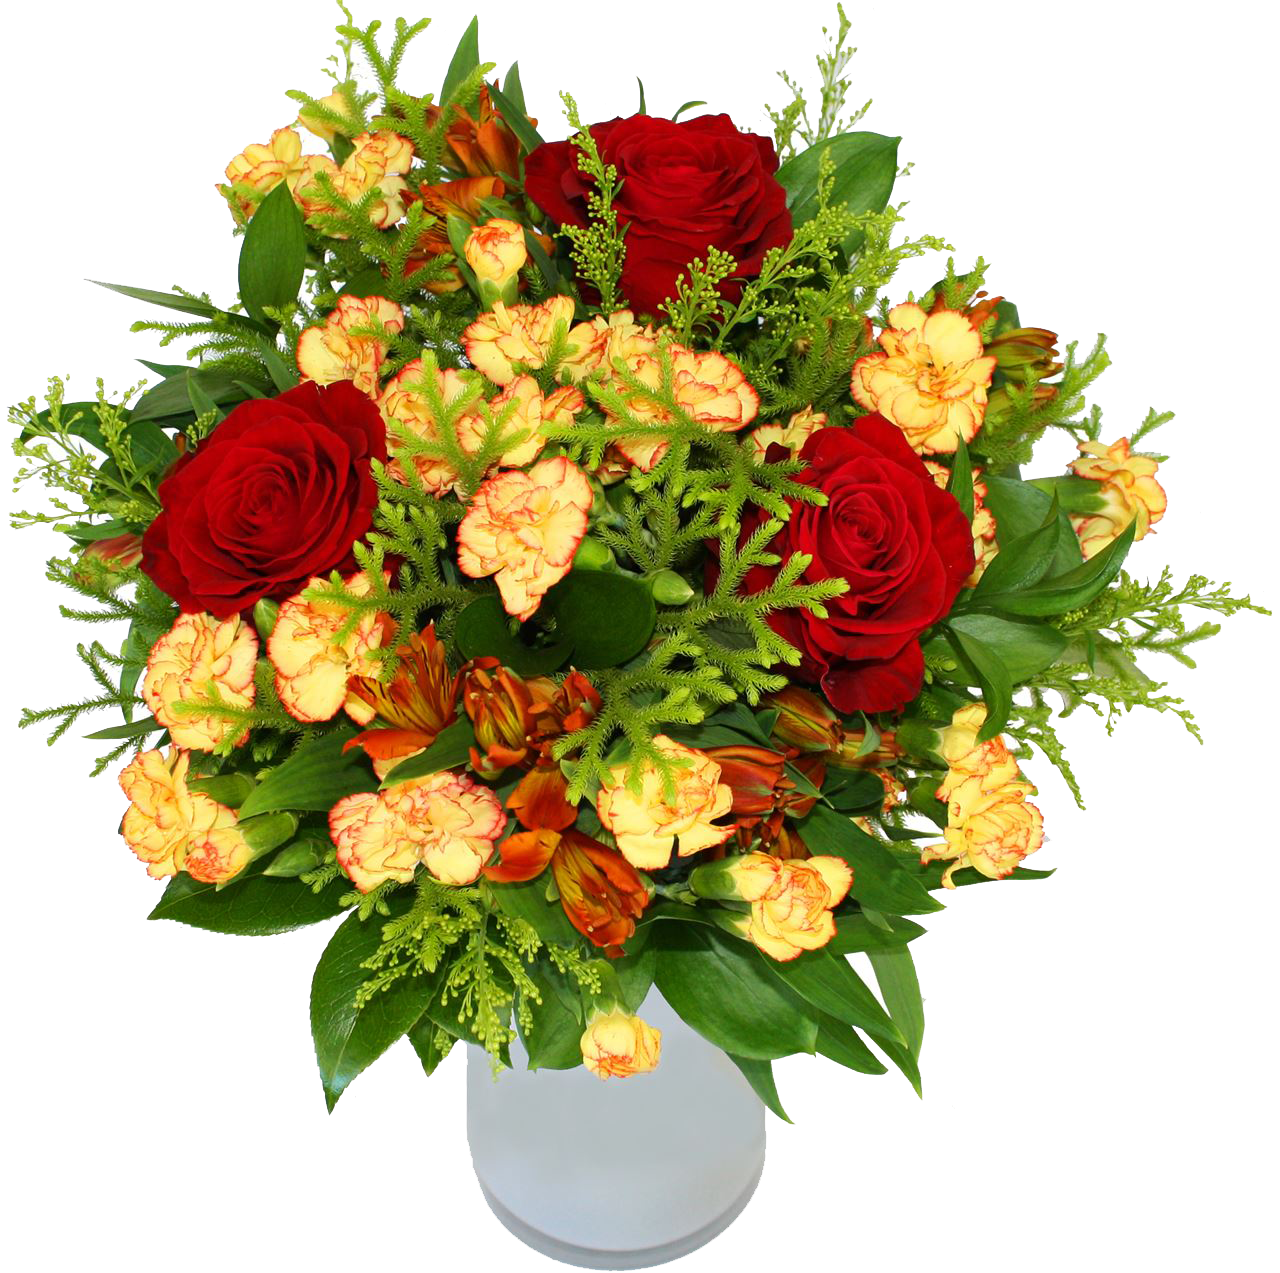 Birthday Flowers Png Hd Transparent Birthday Flowers Hdg Images